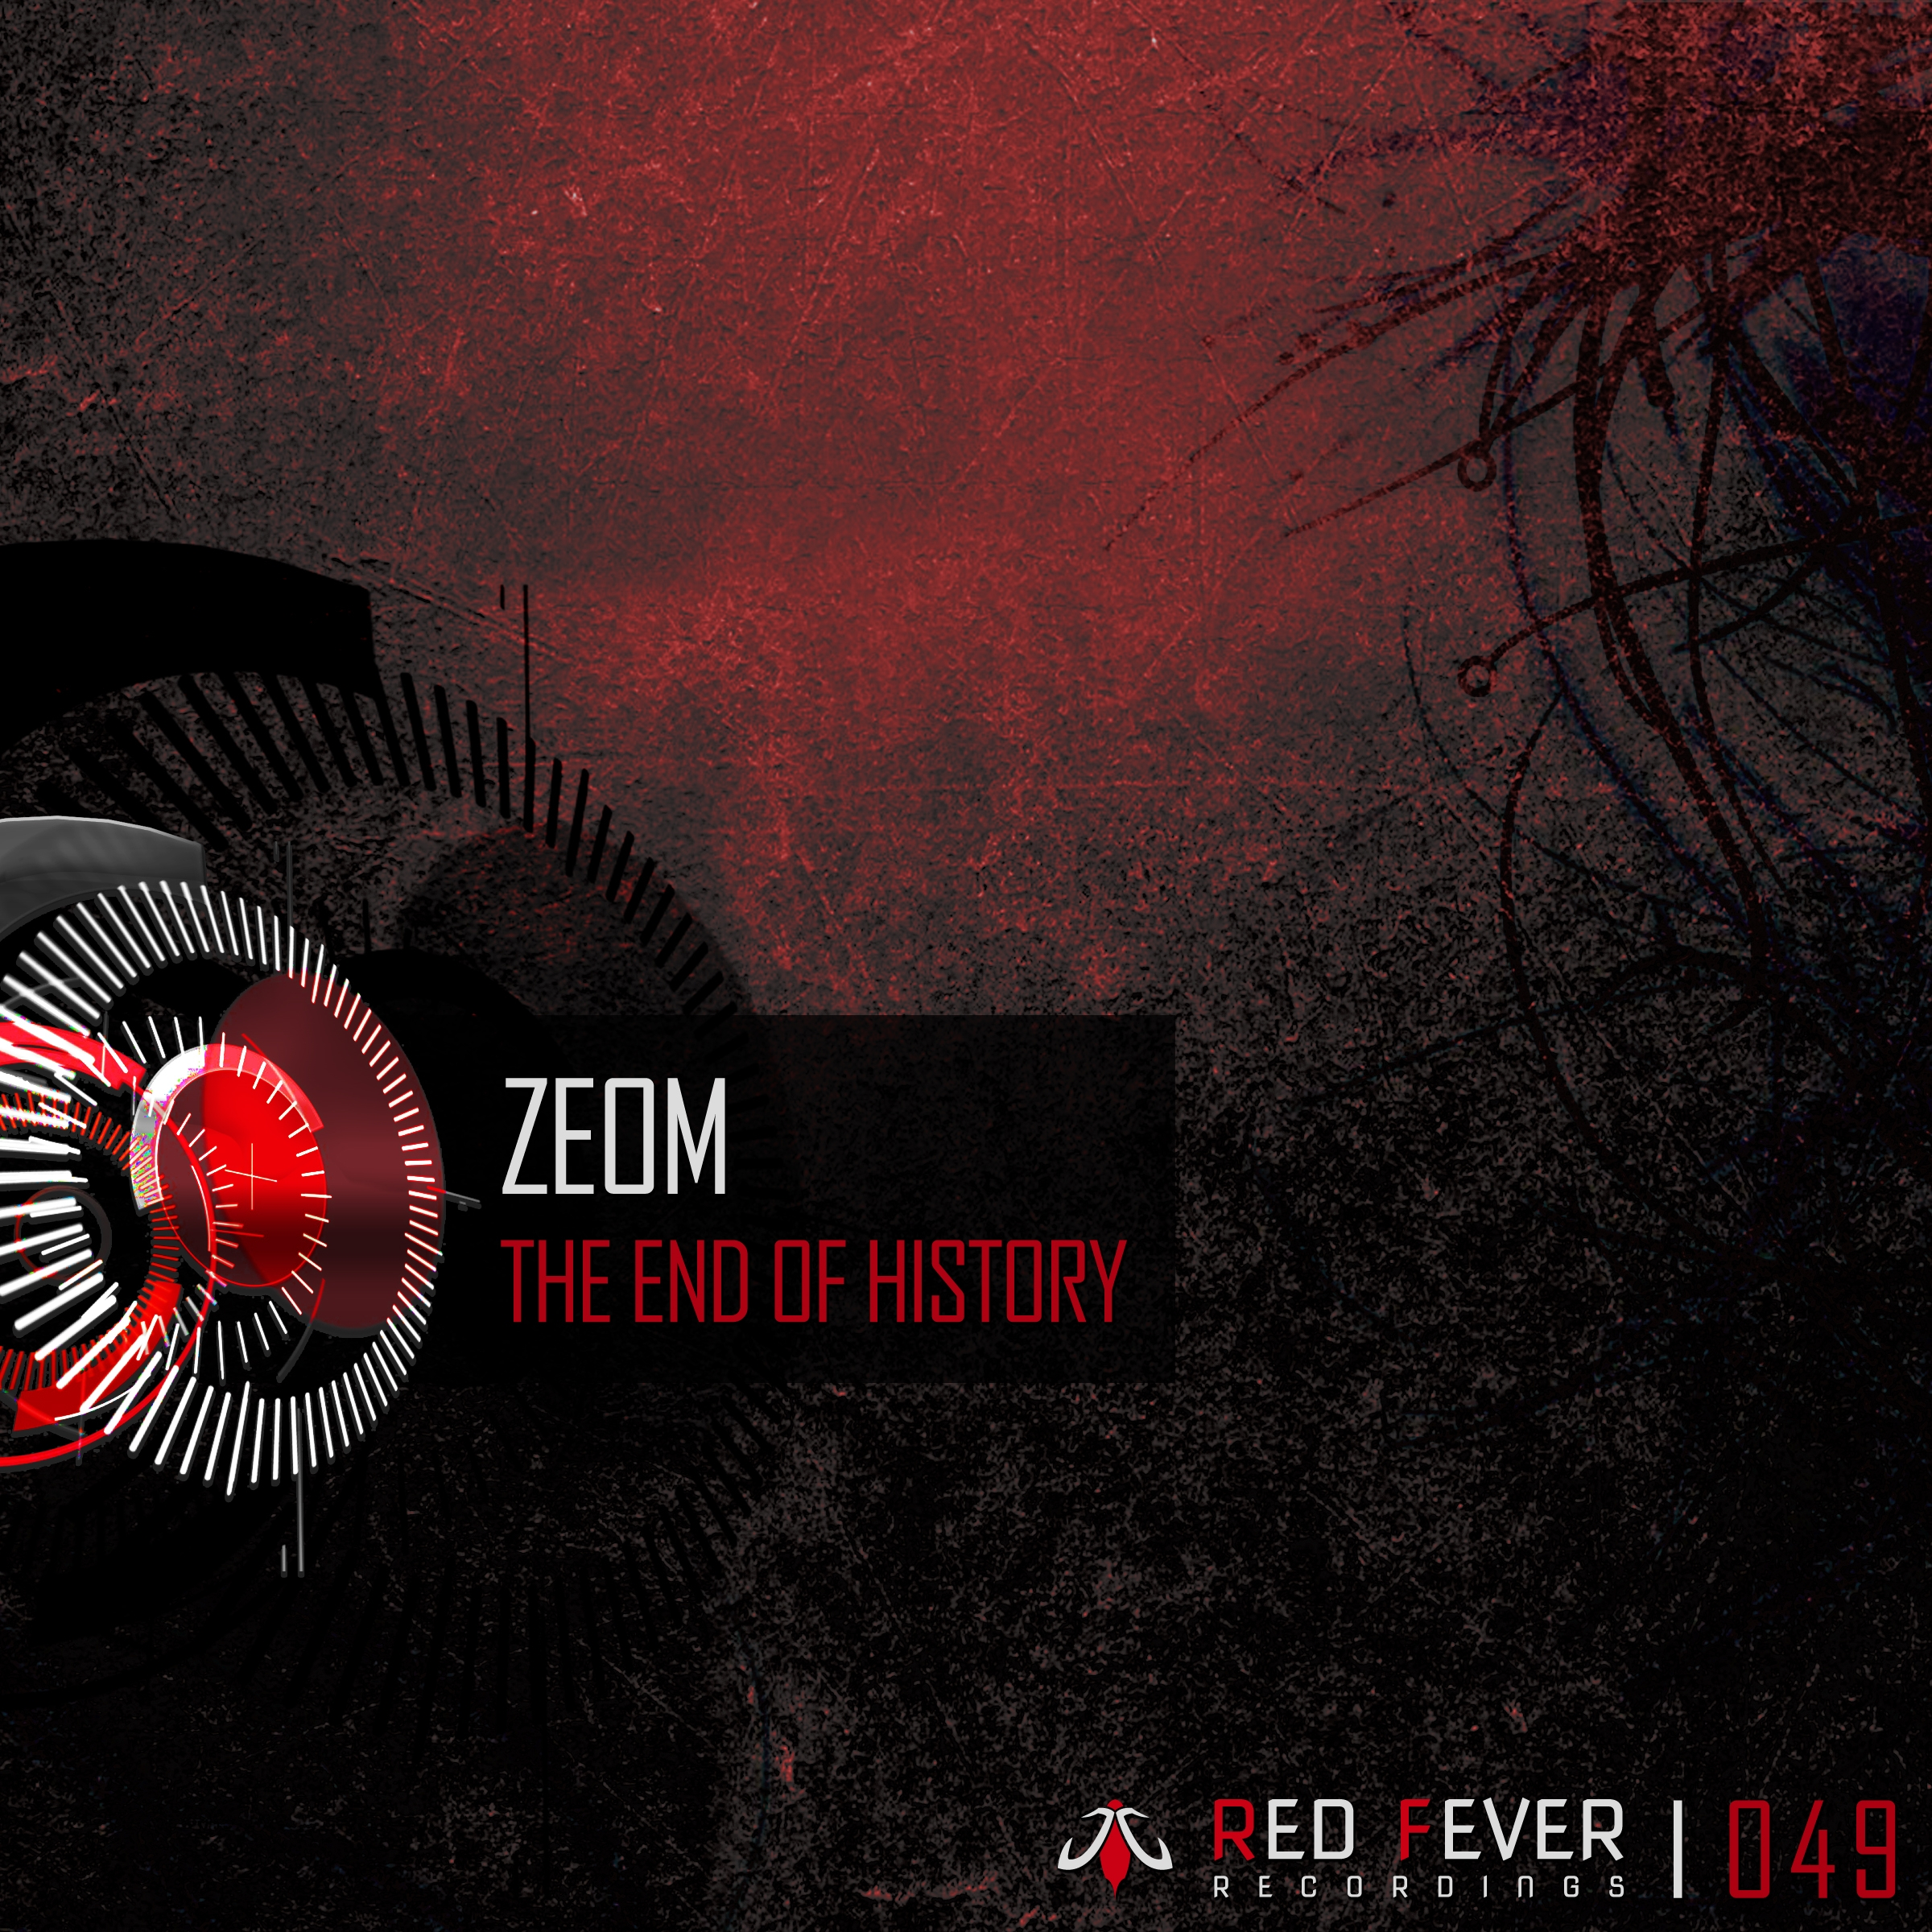 Zeom - The End Of History